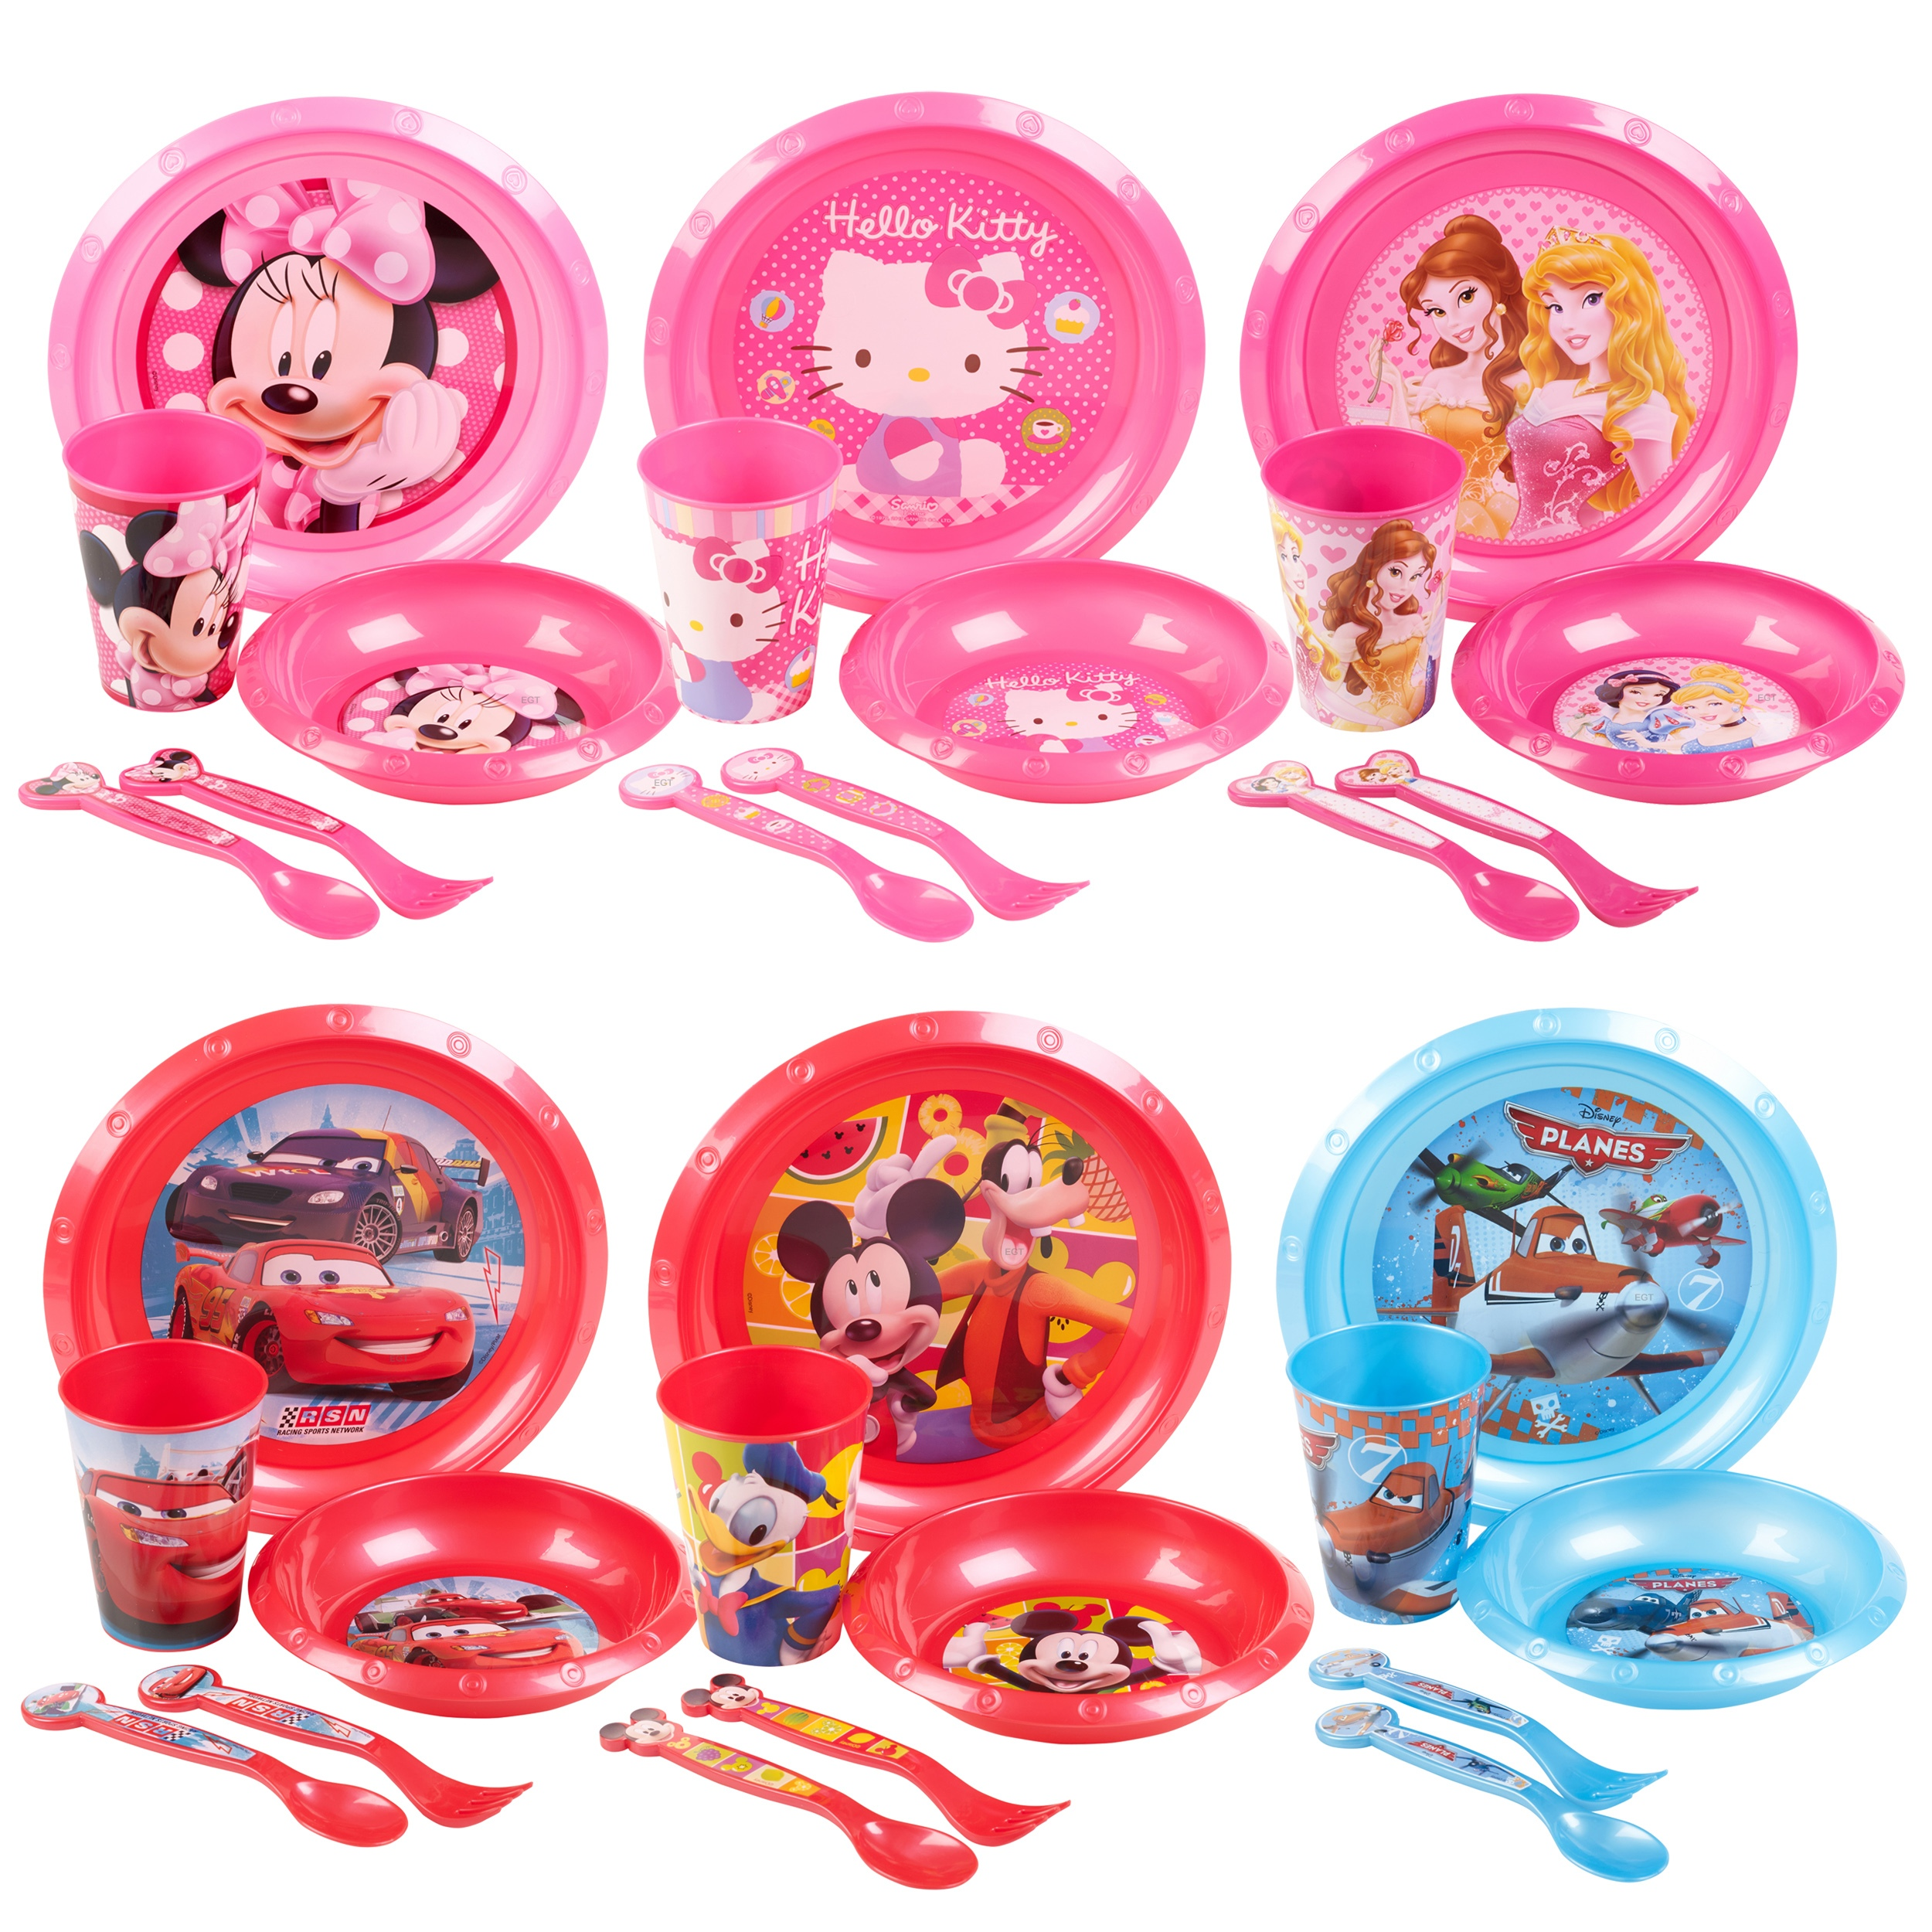 Disney  sc 1 st  eBay & Details about Kids 5 Piece Disney Breakfast Dinner Lunch Supper Plate Bowl Cup Childrenu0027s Set